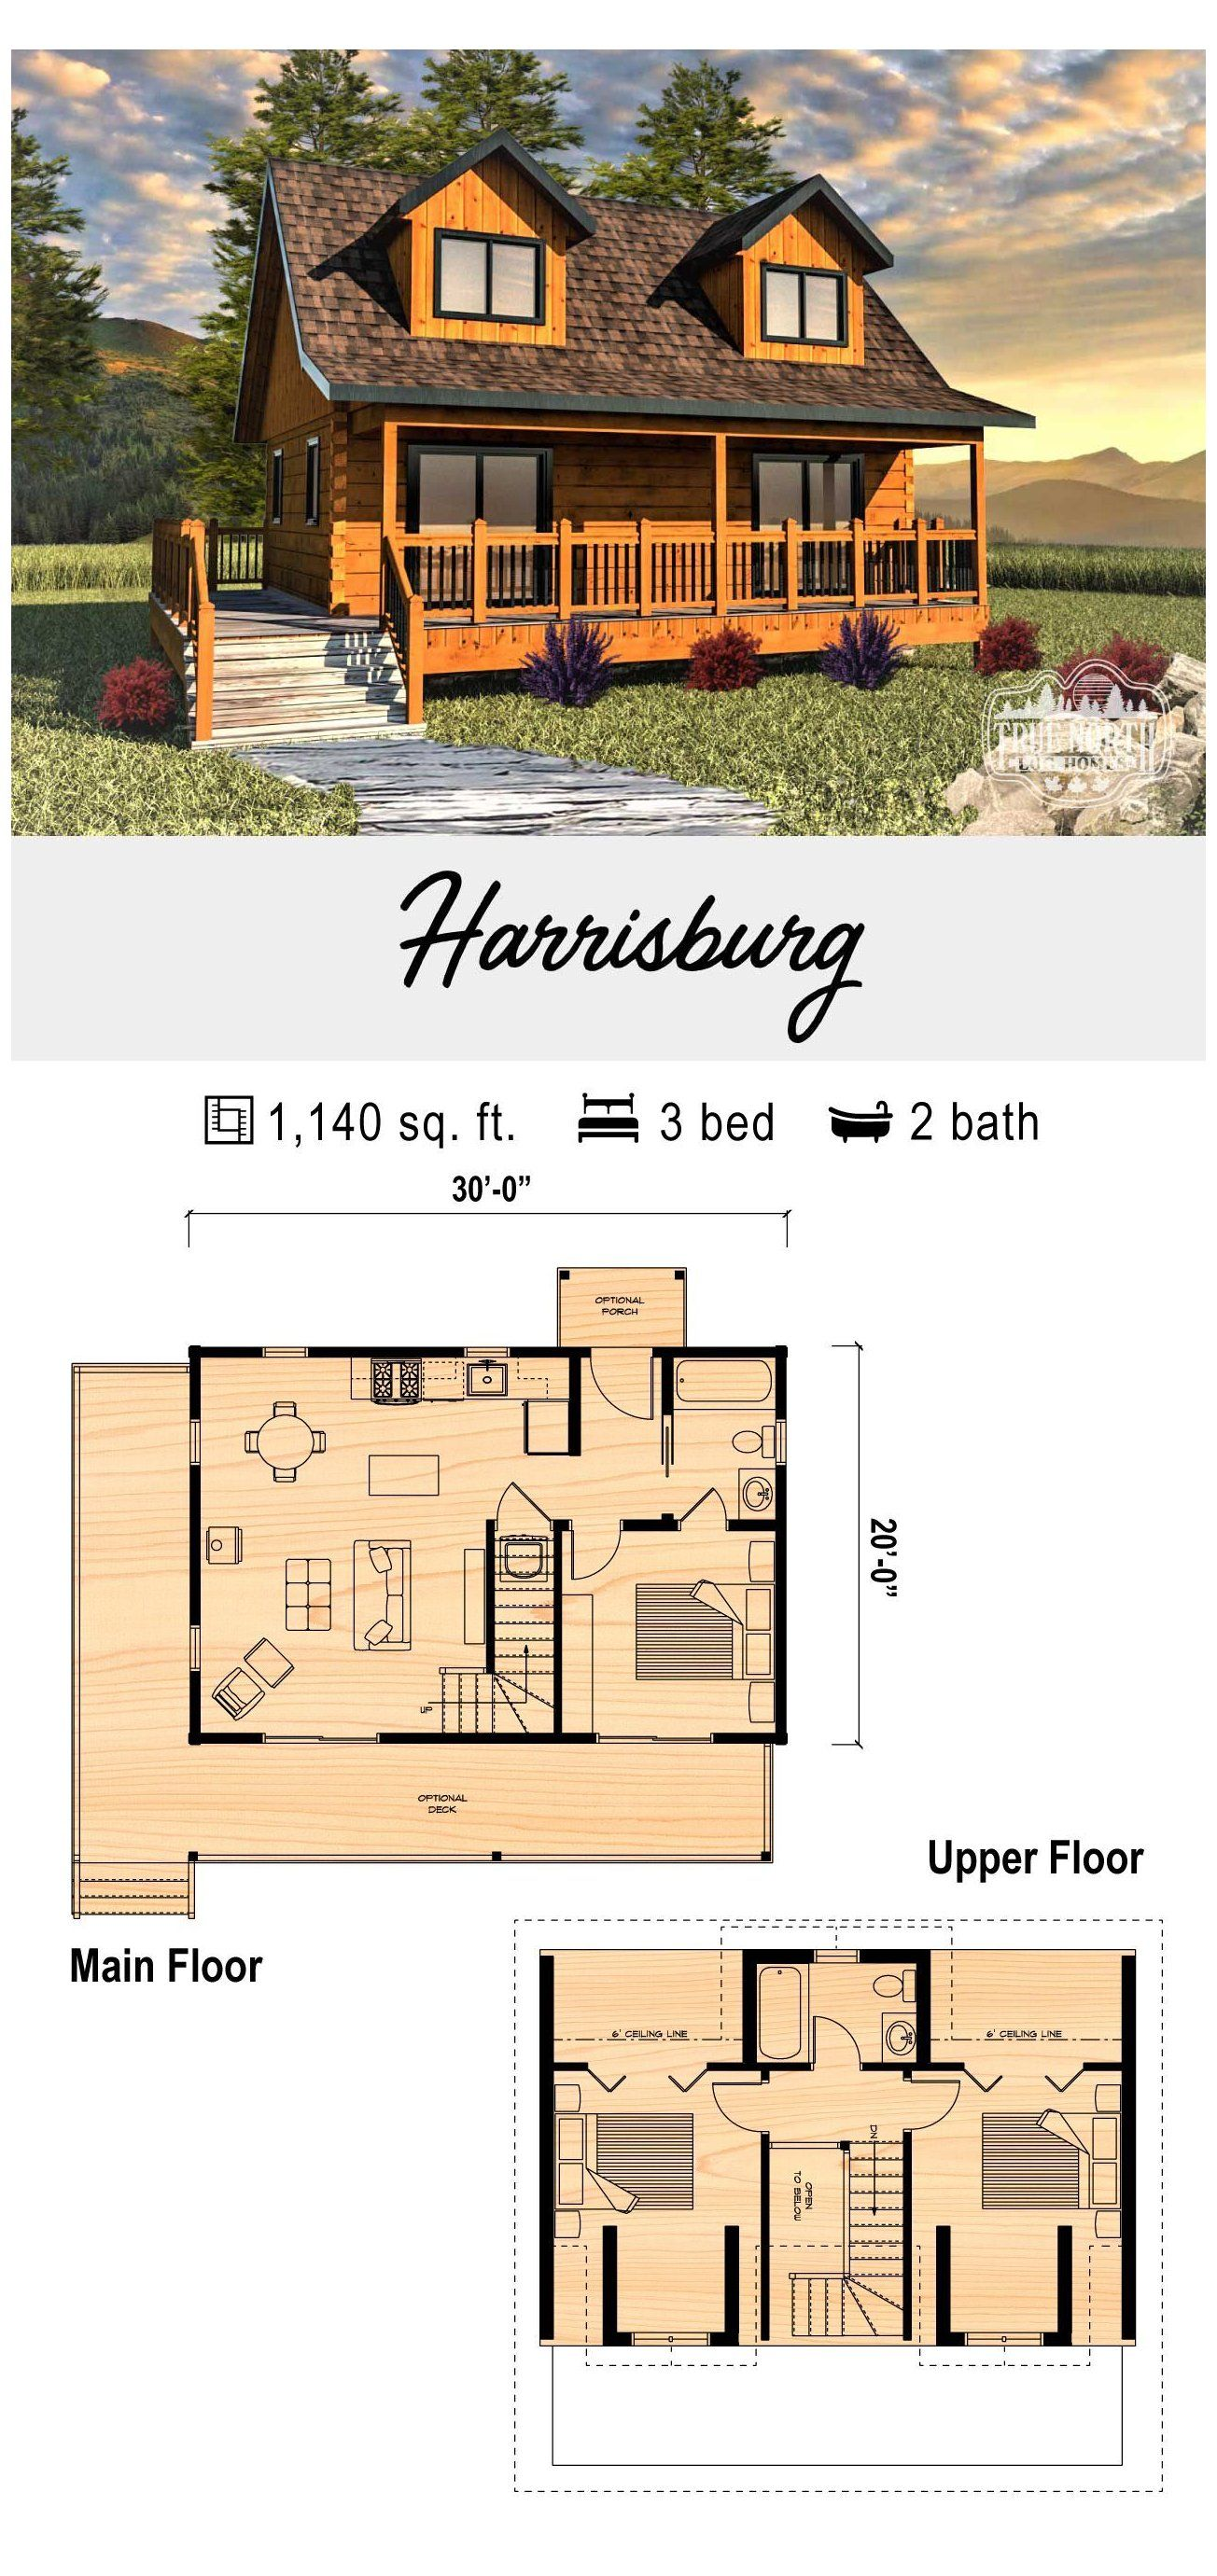 Harrisburg Cabin Plans With Loft Cabinplanswithloft The Harrisburg Is A Perfect Weekend Getaway Small Cabin Plans Cabin House Plans Cabin Plans With Loft